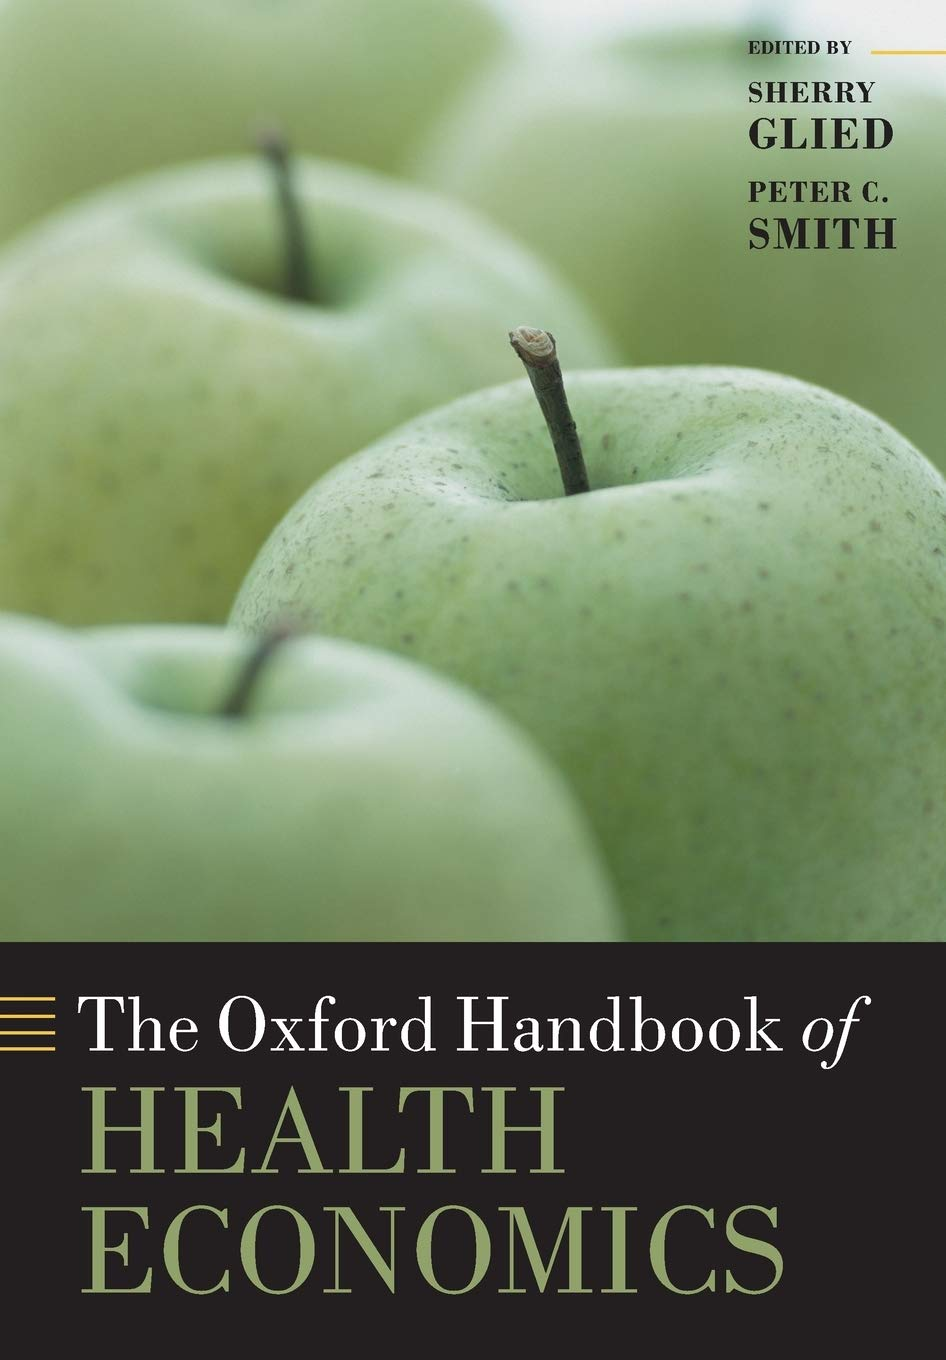 Download The Oxford Handbook Of Health Economics 